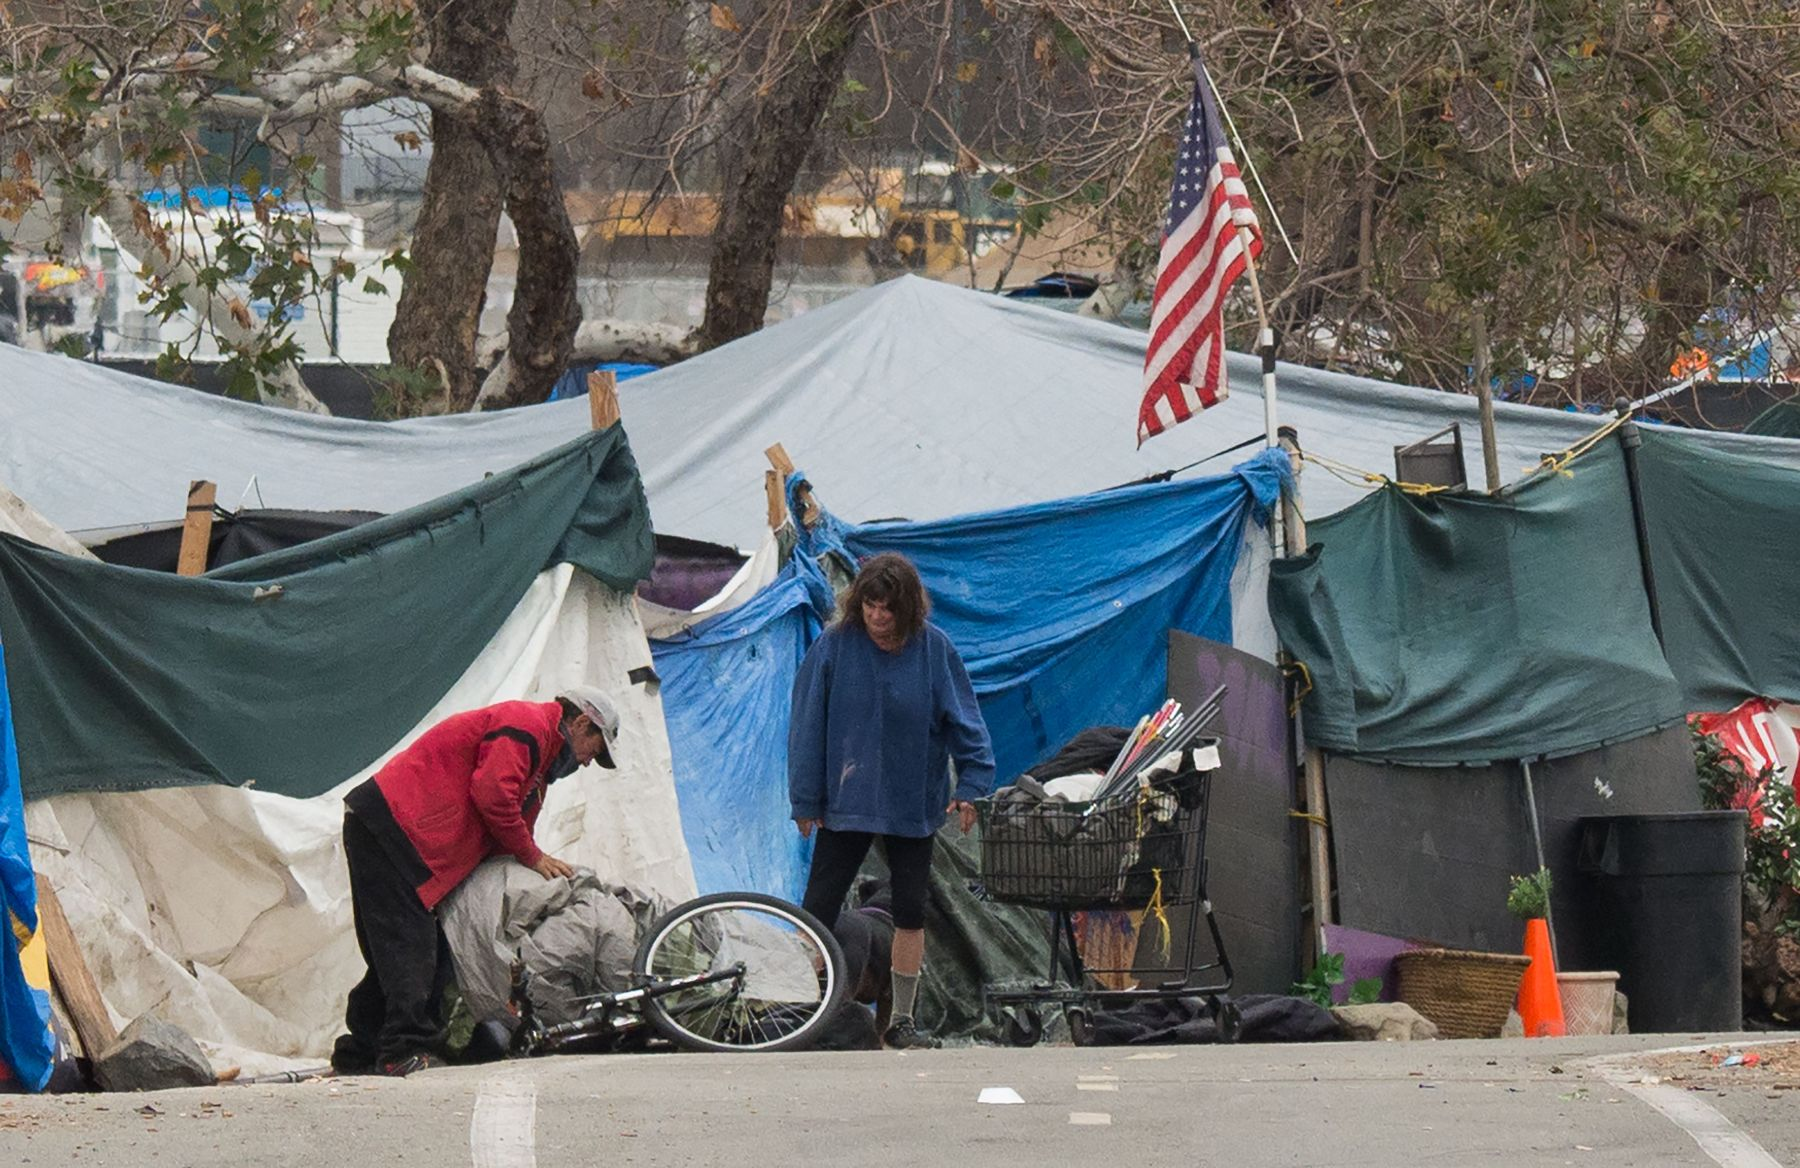 A homeless encampment made of tents and tarps lines the Santa Ana riverbed near Angel Stadium in Anaheim, California, January 25, 2018. (ROBYN BECK/AFP/Getty Images)